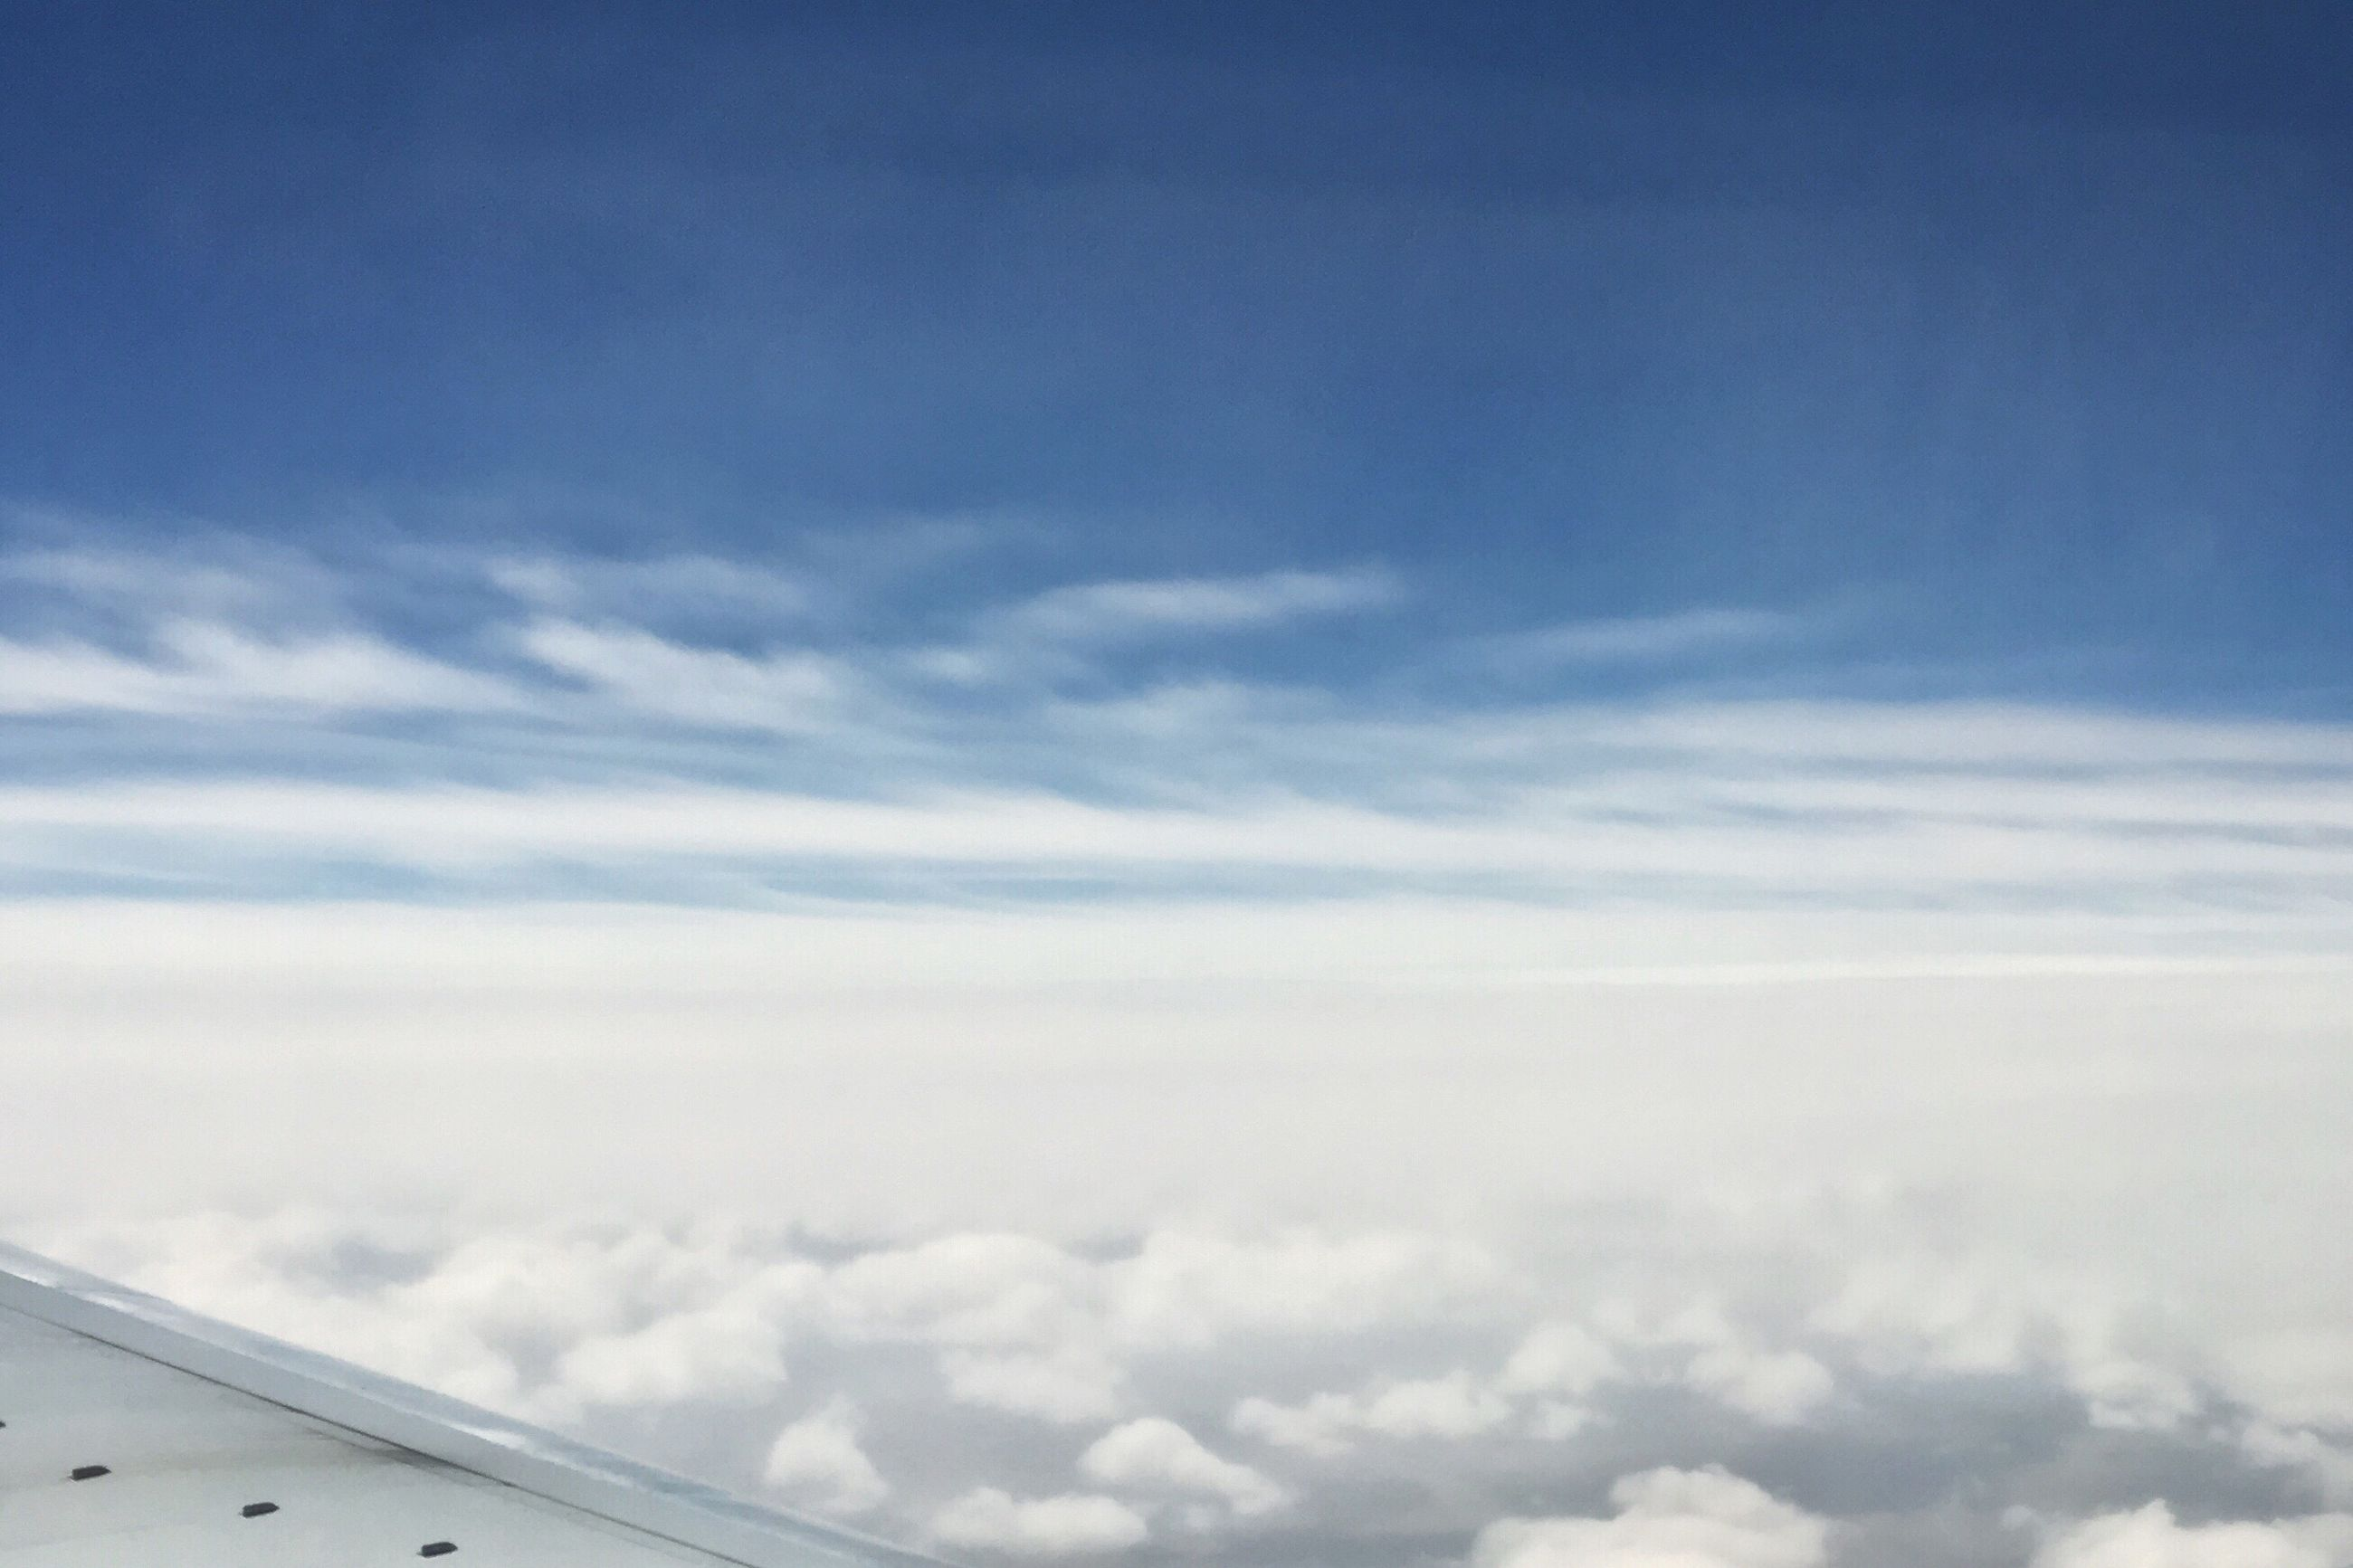 sky, cloud - sky, blue, low angle view, cloud, nature, scenics, cloudy, beauty in nature, tranquility, white color, day, outdoors, tranquil scene, cloudscape, no people, copy space, transportation, white, weather